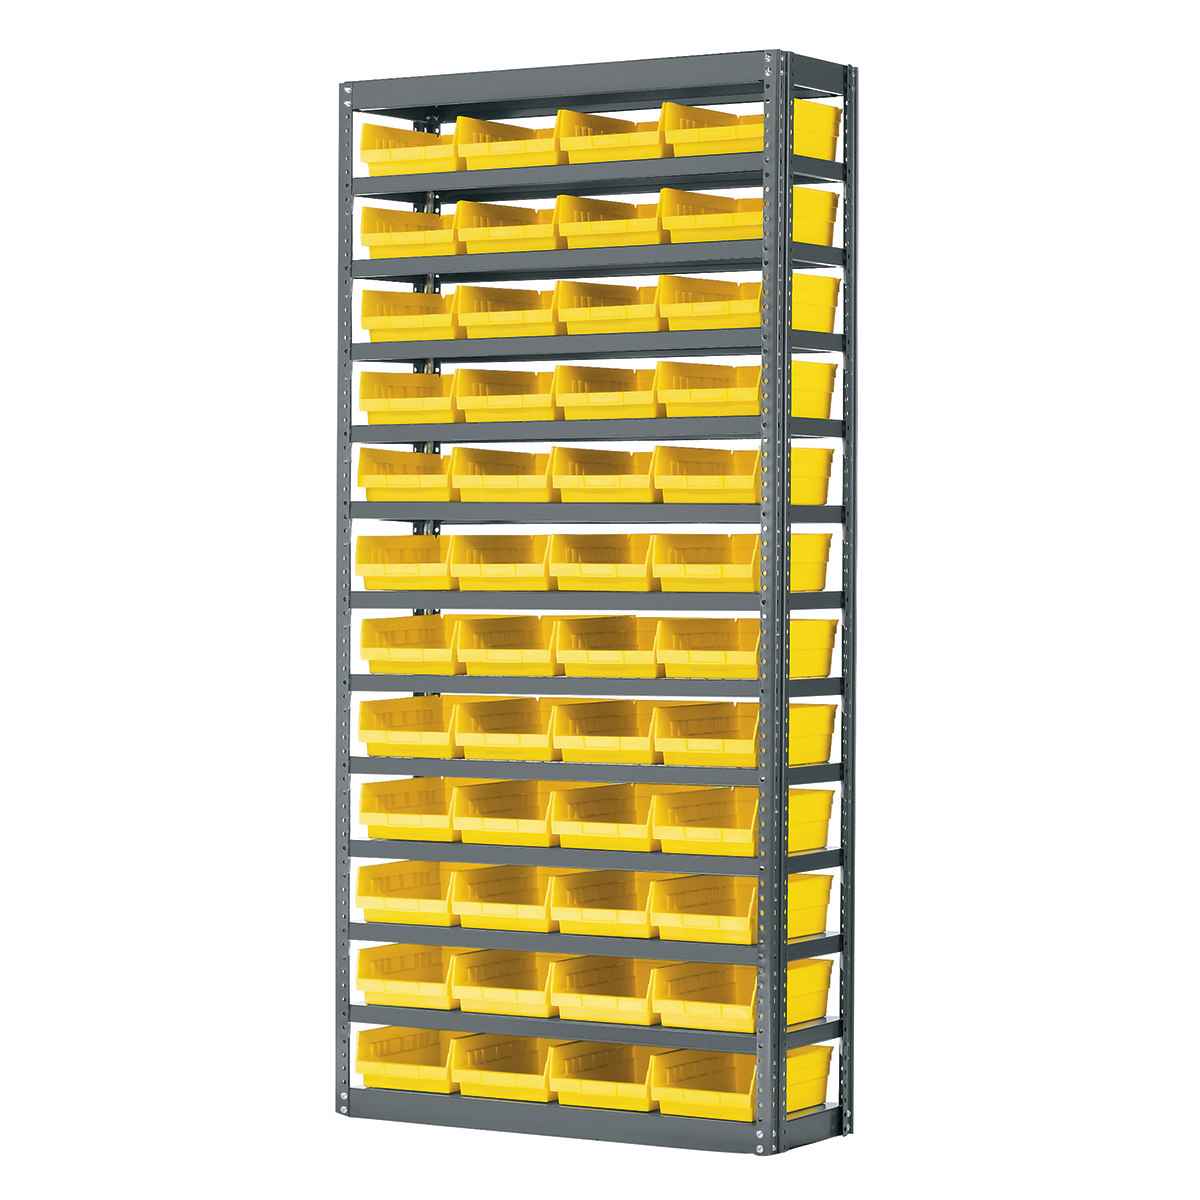 Steel Shelving Kit, 12x36x79, 48 Bins, Gray/Yellow (AS1279150Y).  This item sold in carton quantities of 1.